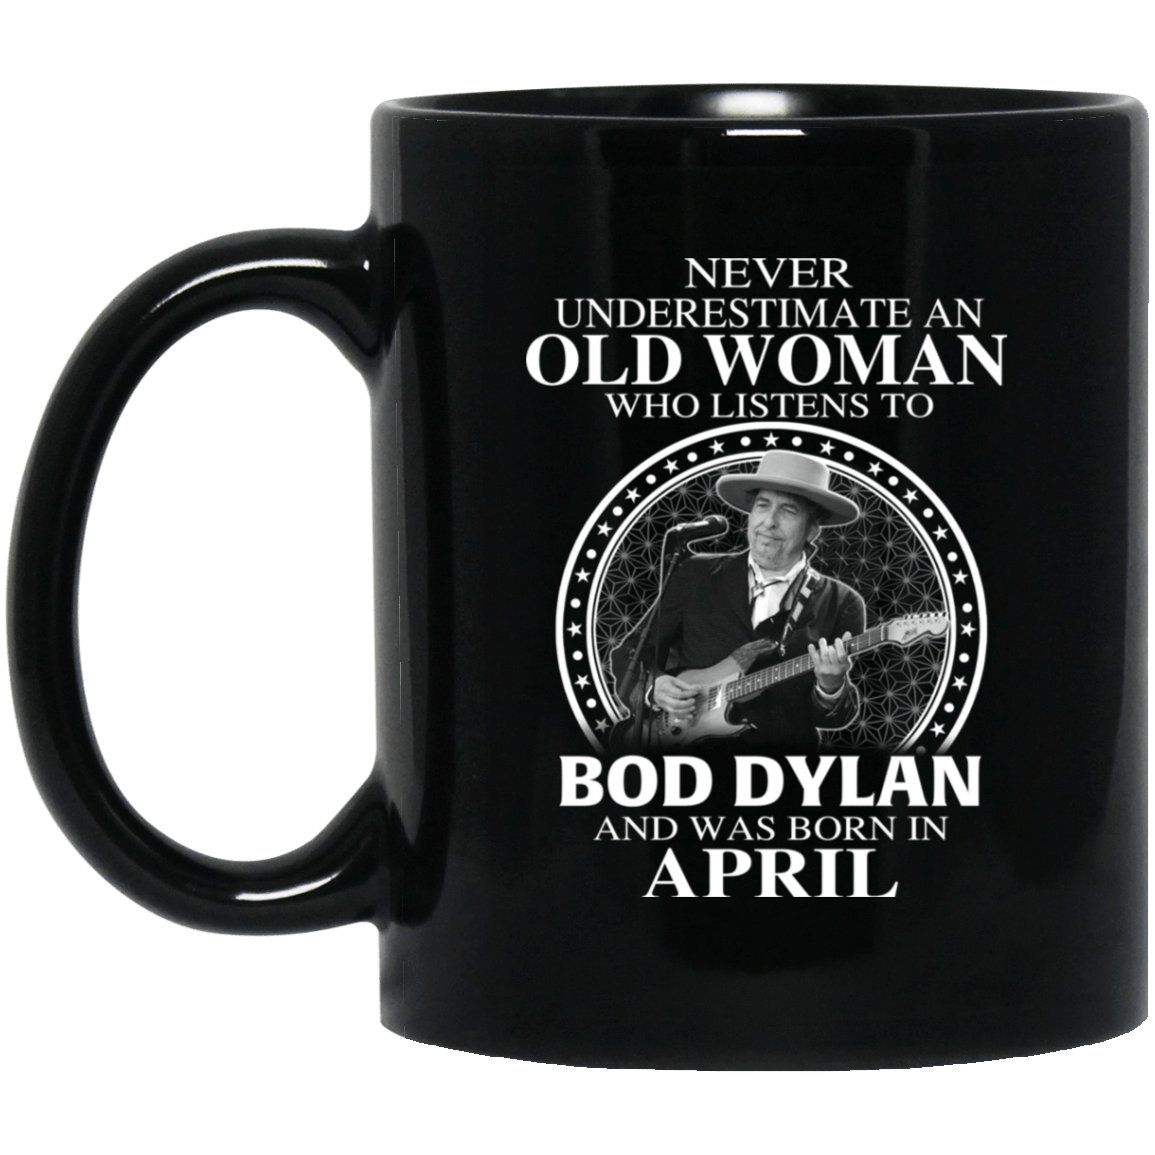 An Old Woman Who Listens To Bob Dylan And Was Born In April Mug 1065-10181-76154150-49307 - Tee Ript